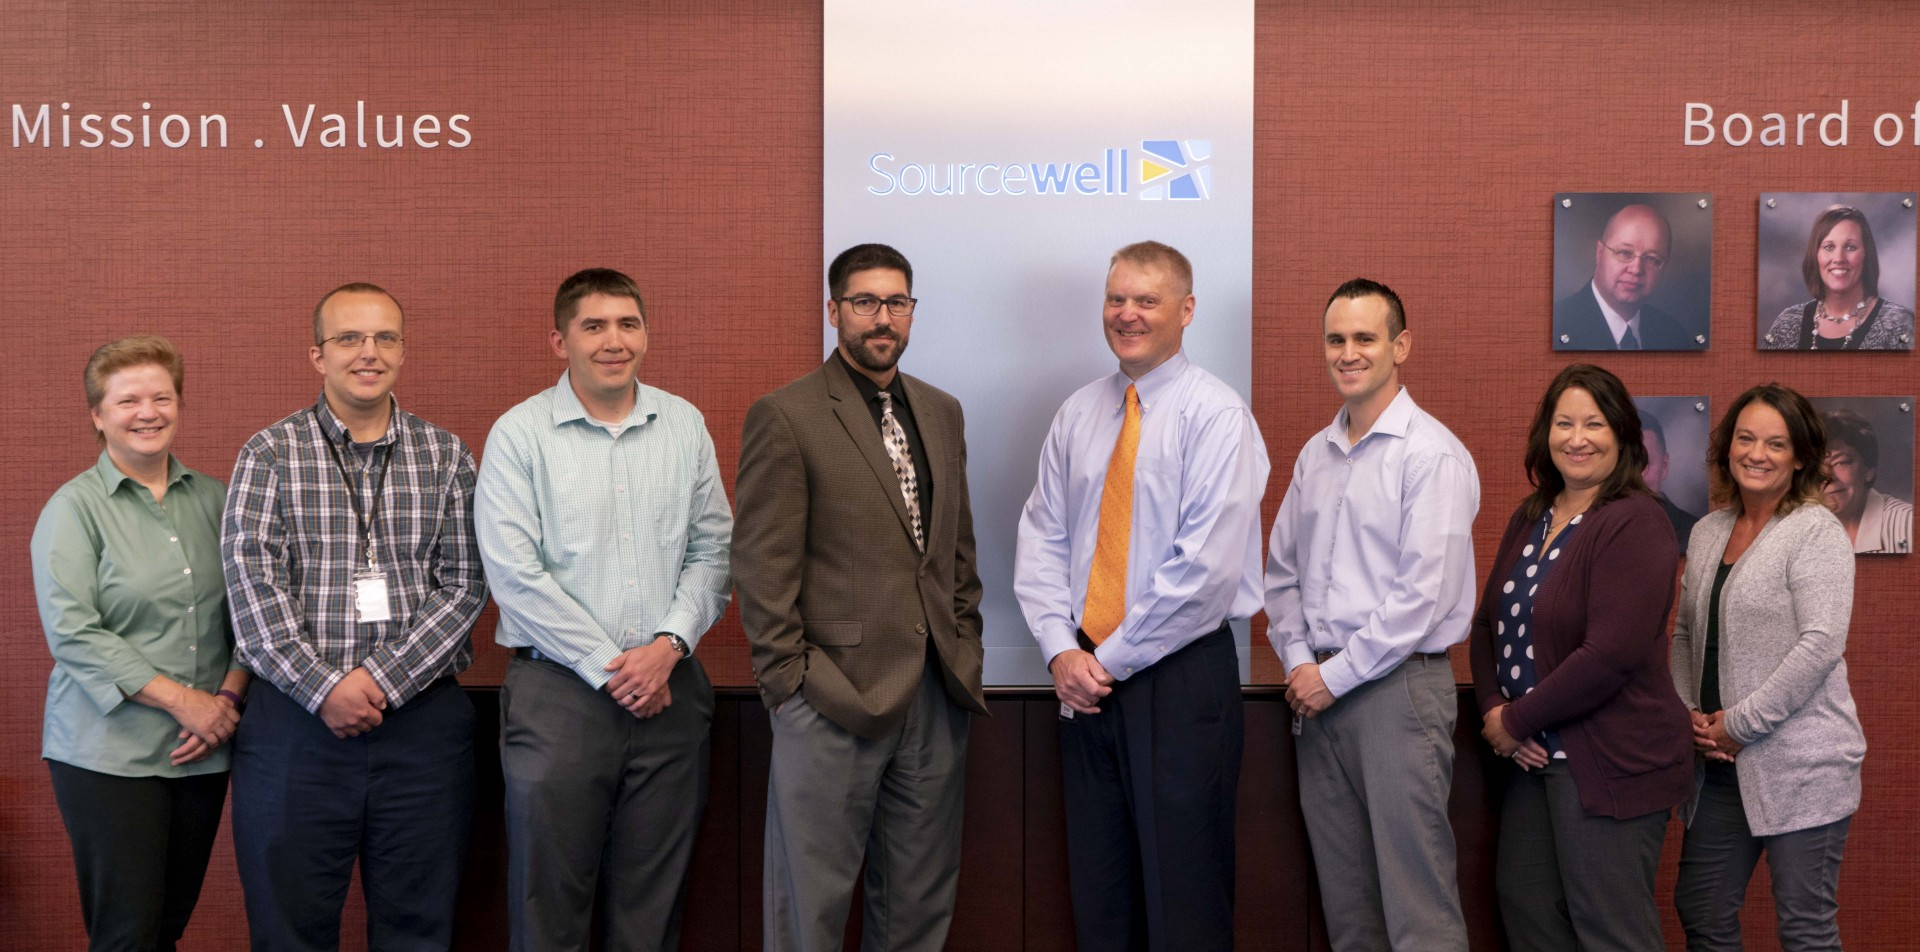 Sourcewell's procurement team, from left: Carol Jackson, Brandon Town, James Voelker, Jeremy Schwartz (CPO), Chris Robinson (manager), Michael Munoz, Kim Austin, and Sheila Christoffersen